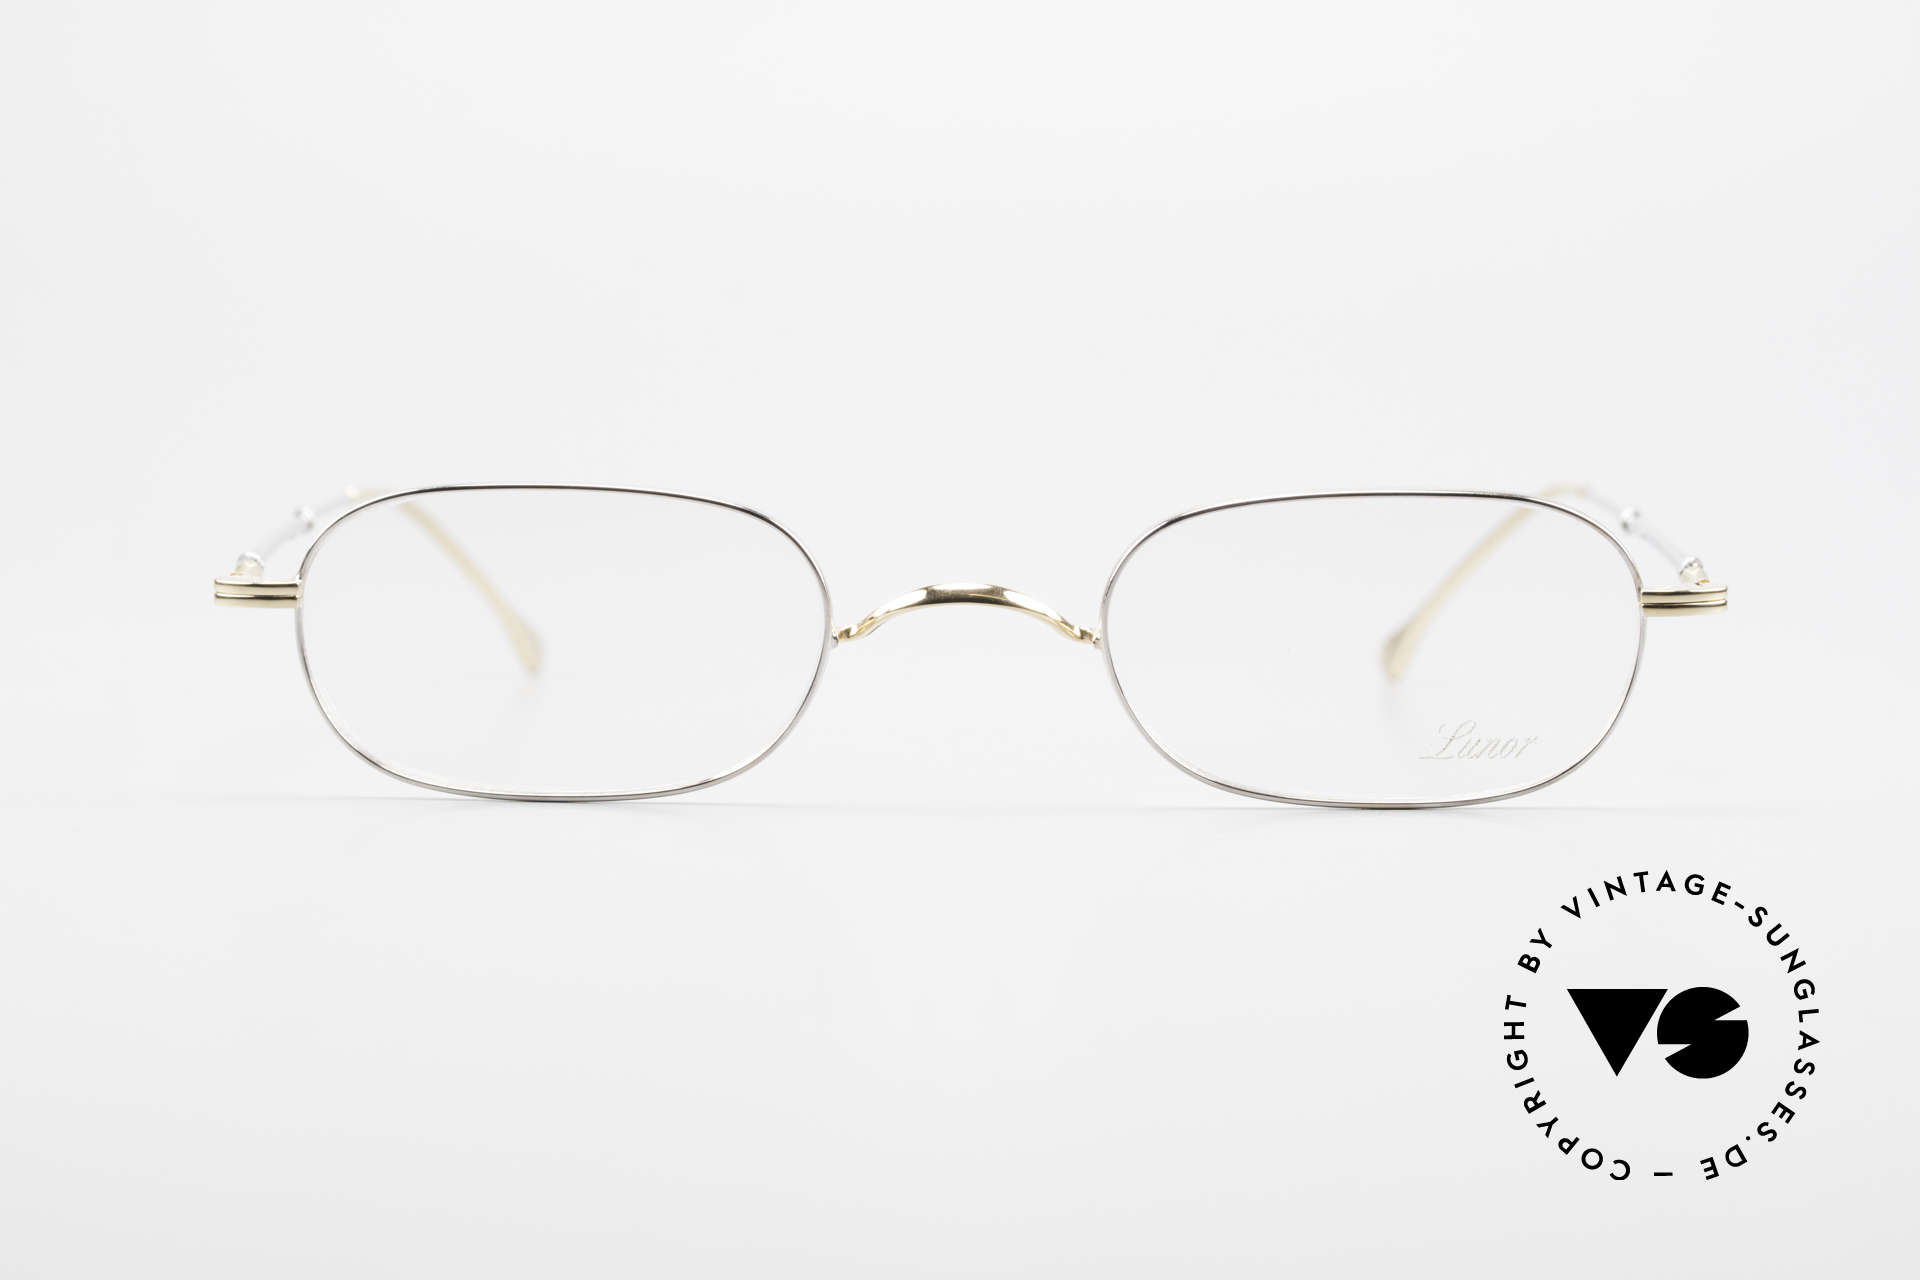 Lunor Telescopic 403 BC Extendable Frame For Gents, traditional German brand; quality handmade in Germany, Made for Men